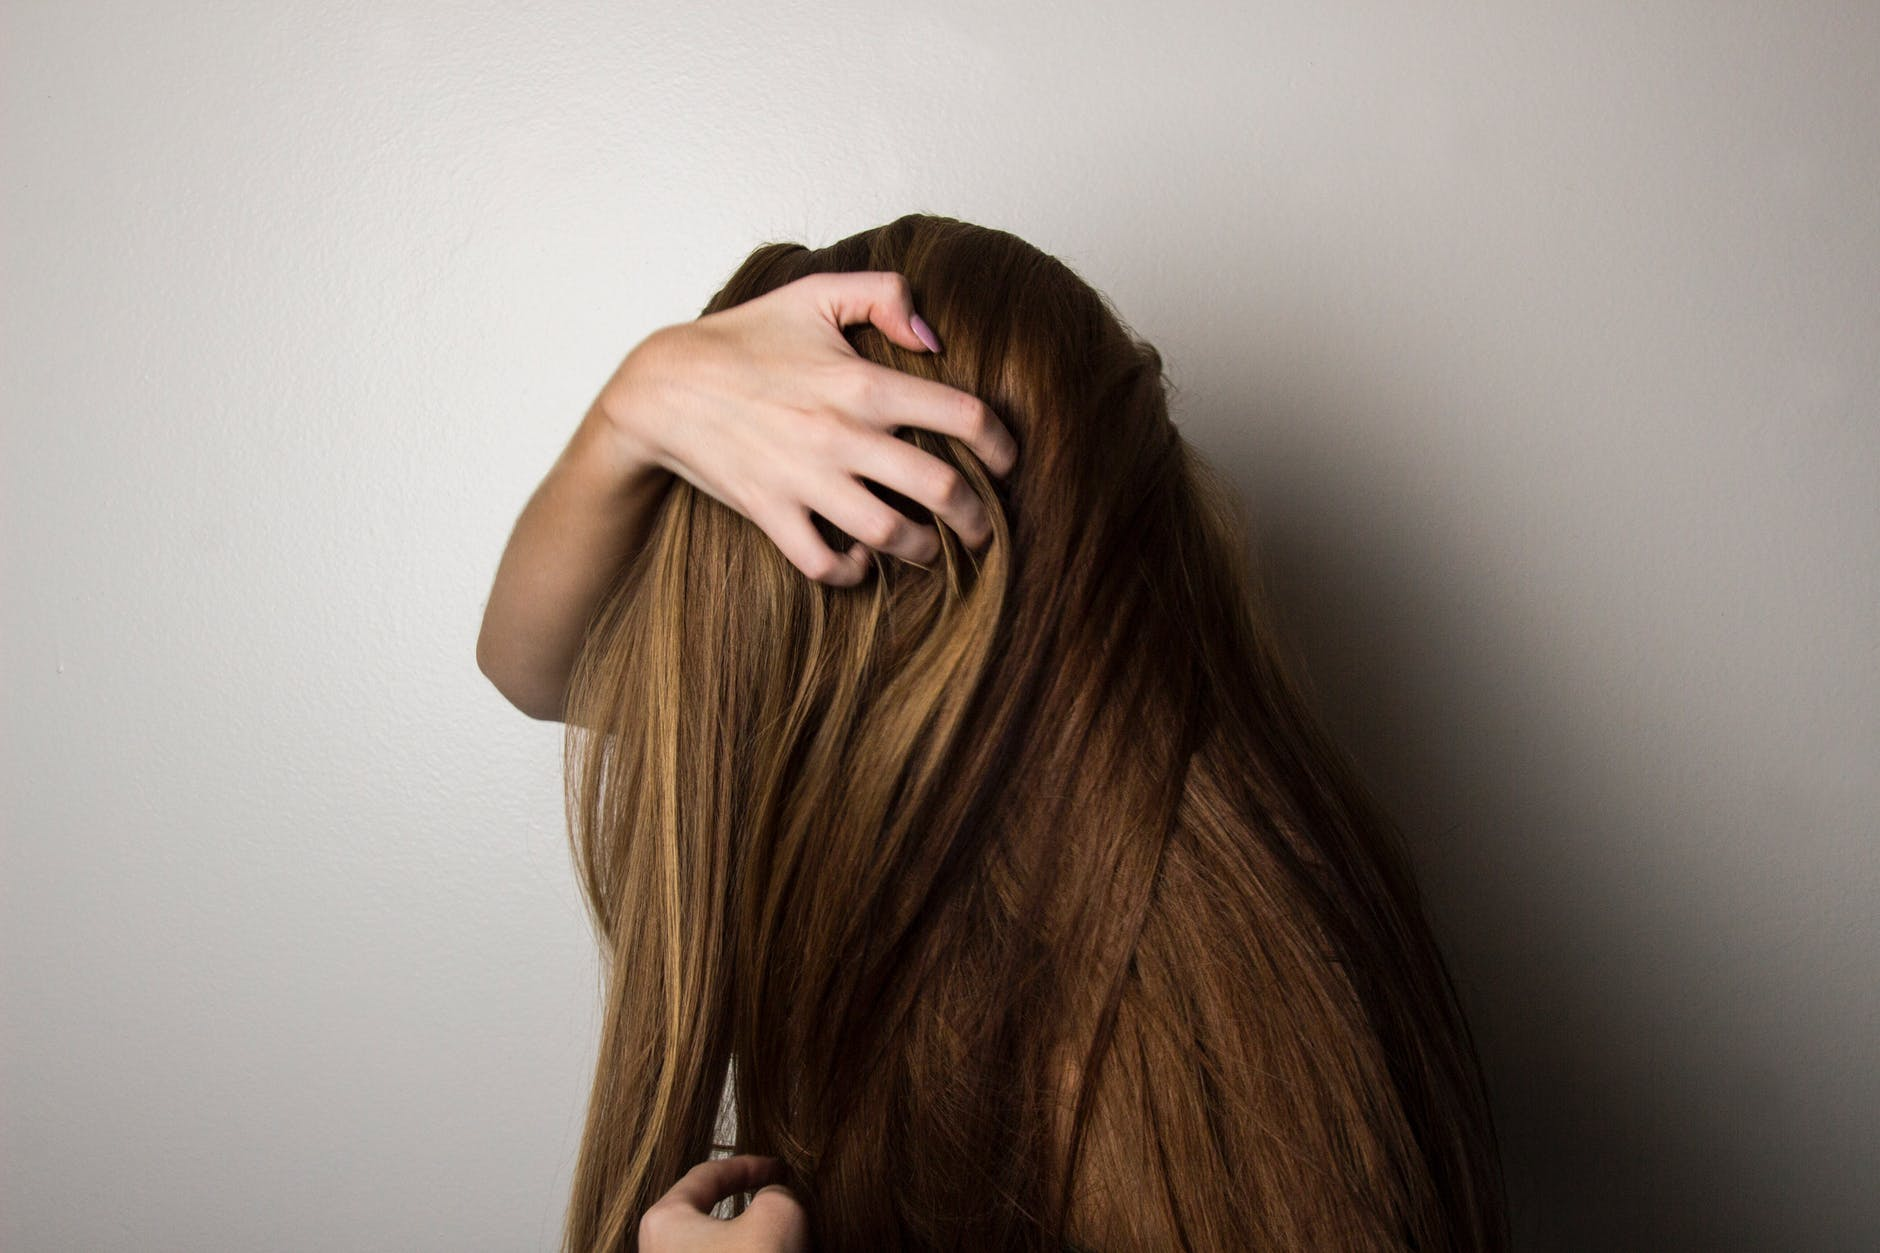 Brunette woman combing hair covering face with hand